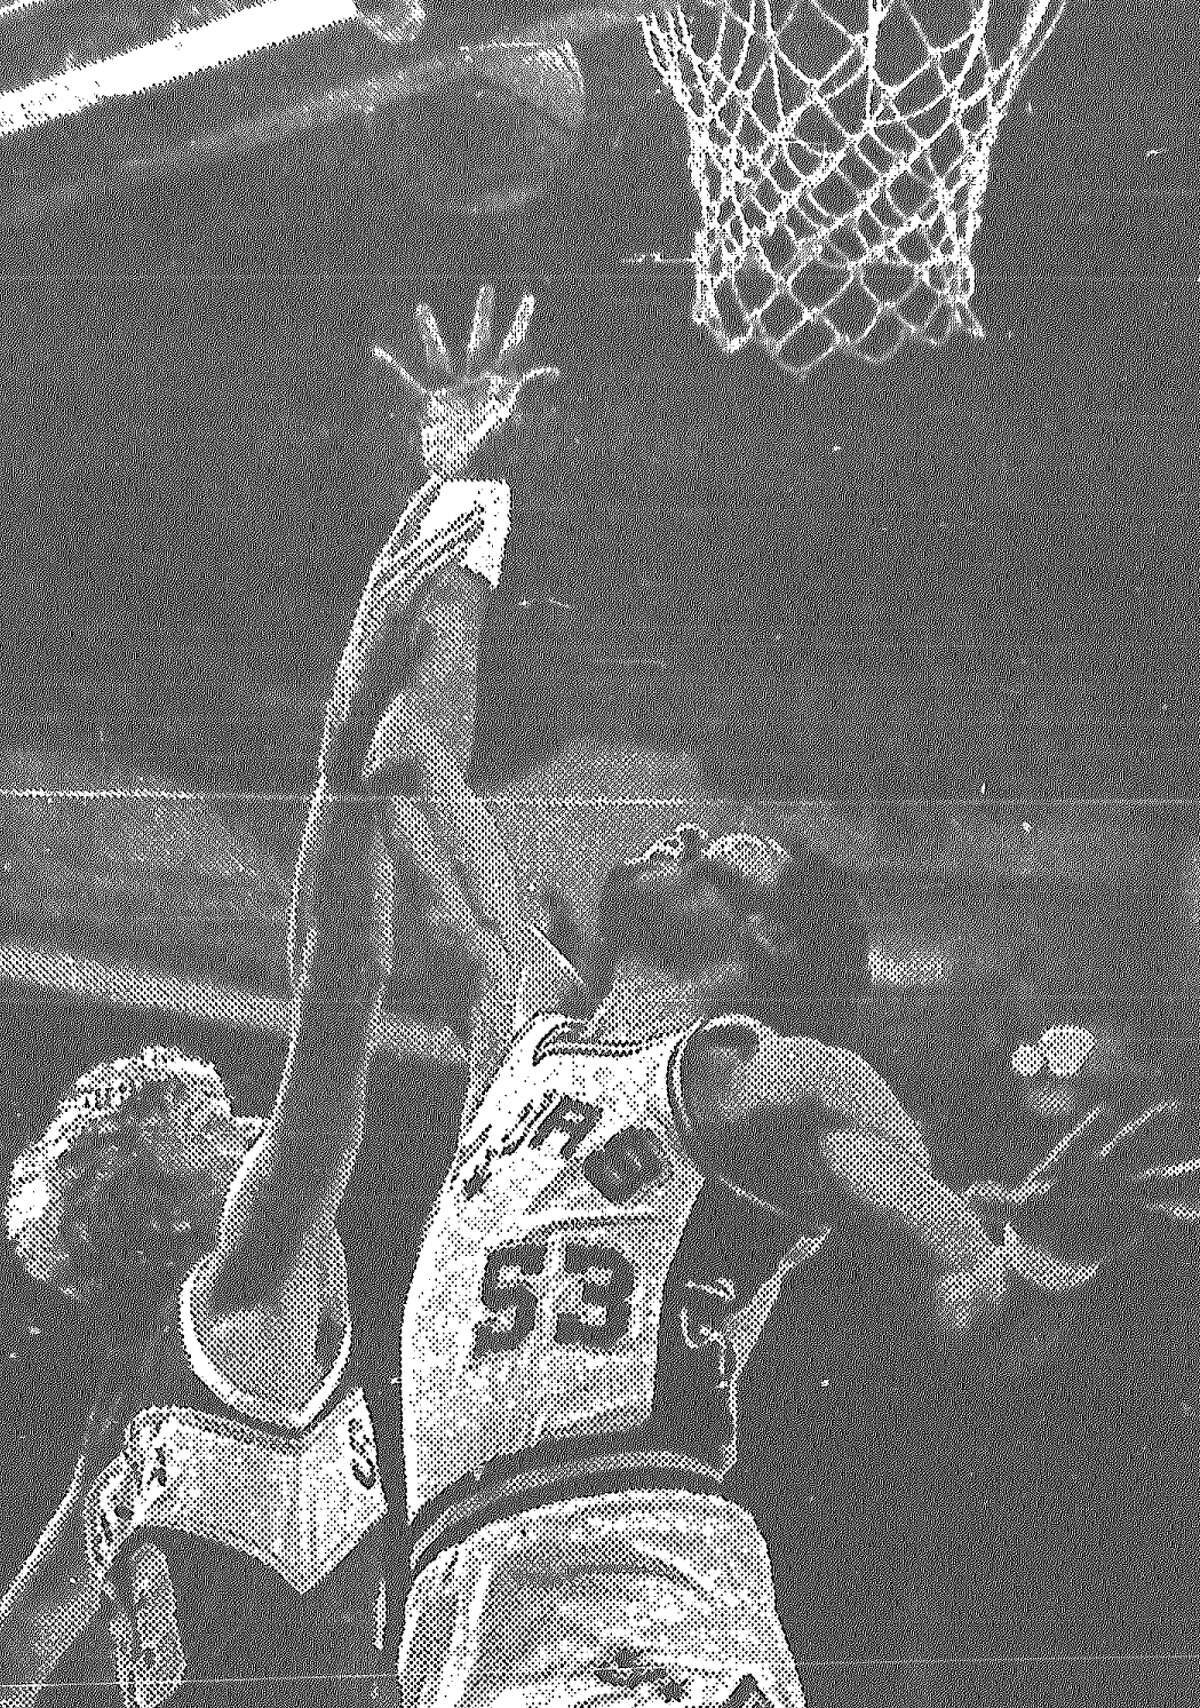 The Spurs' Artis Gilmore goes up for the ball with the Sonics' Jack Sikma during Tuesday's game. The Spurs won, 119-104. Published in the San Antonio Express March 2, 1983.